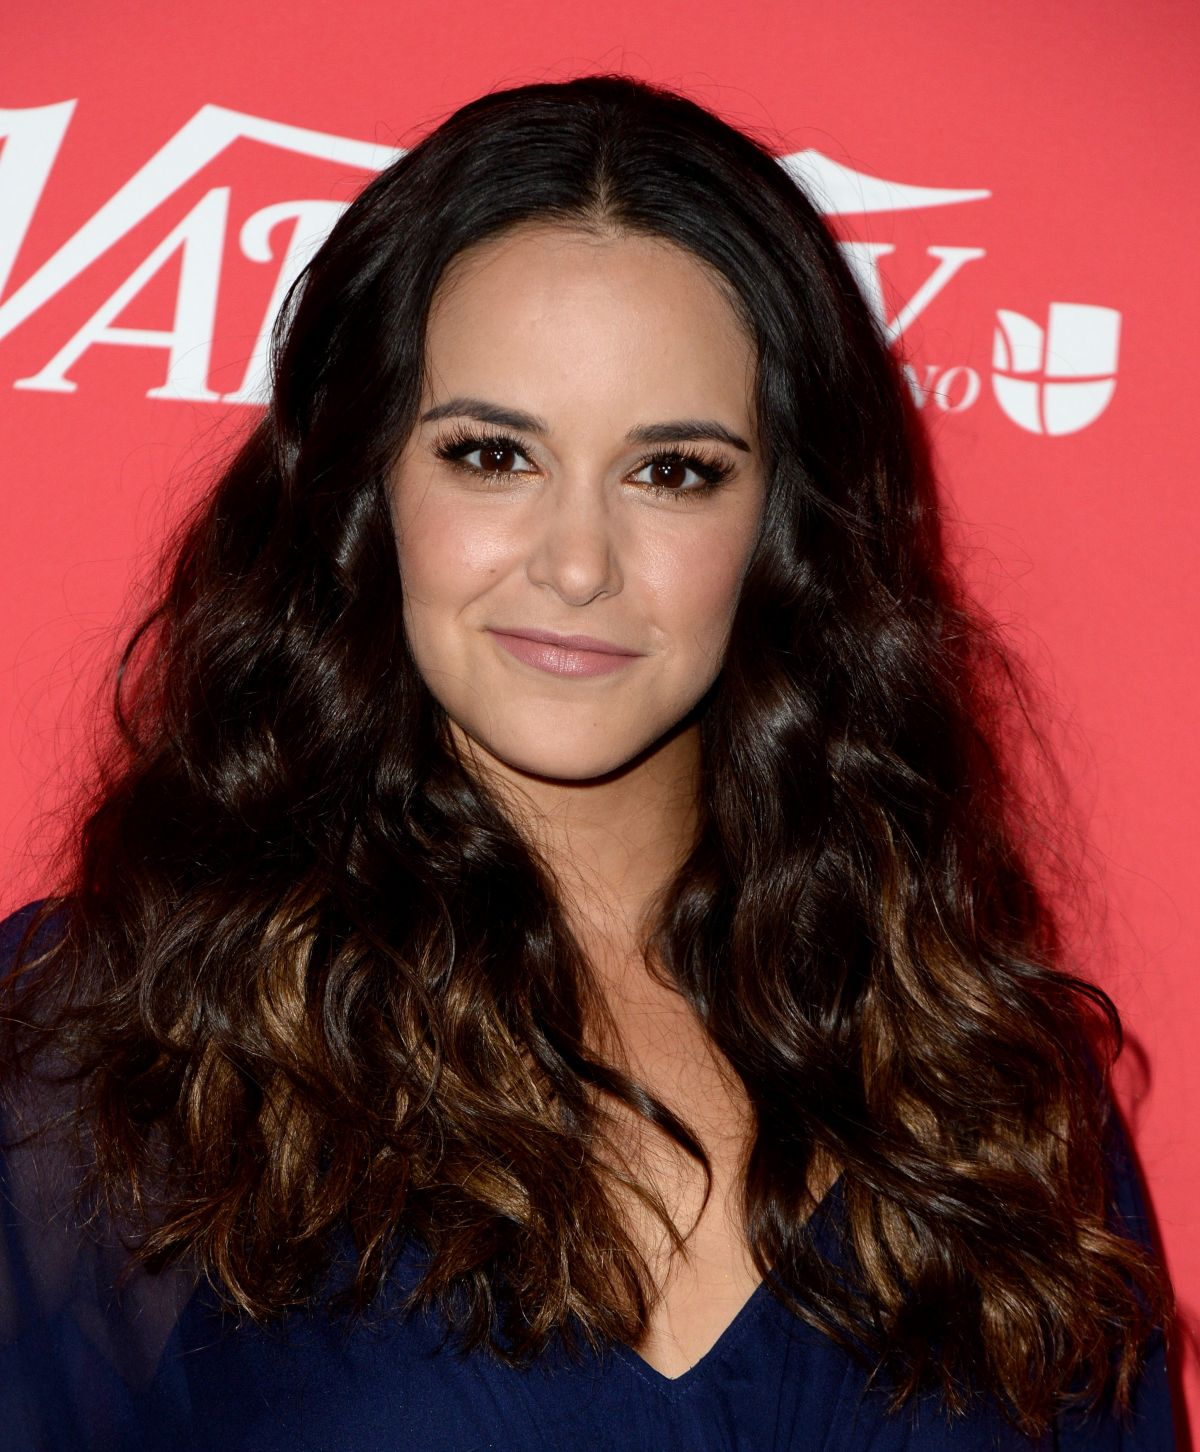 MELISSA FUMERO at Variety Latino's 10 Latinos to Watch Party in Los Angeles 09/28/2016